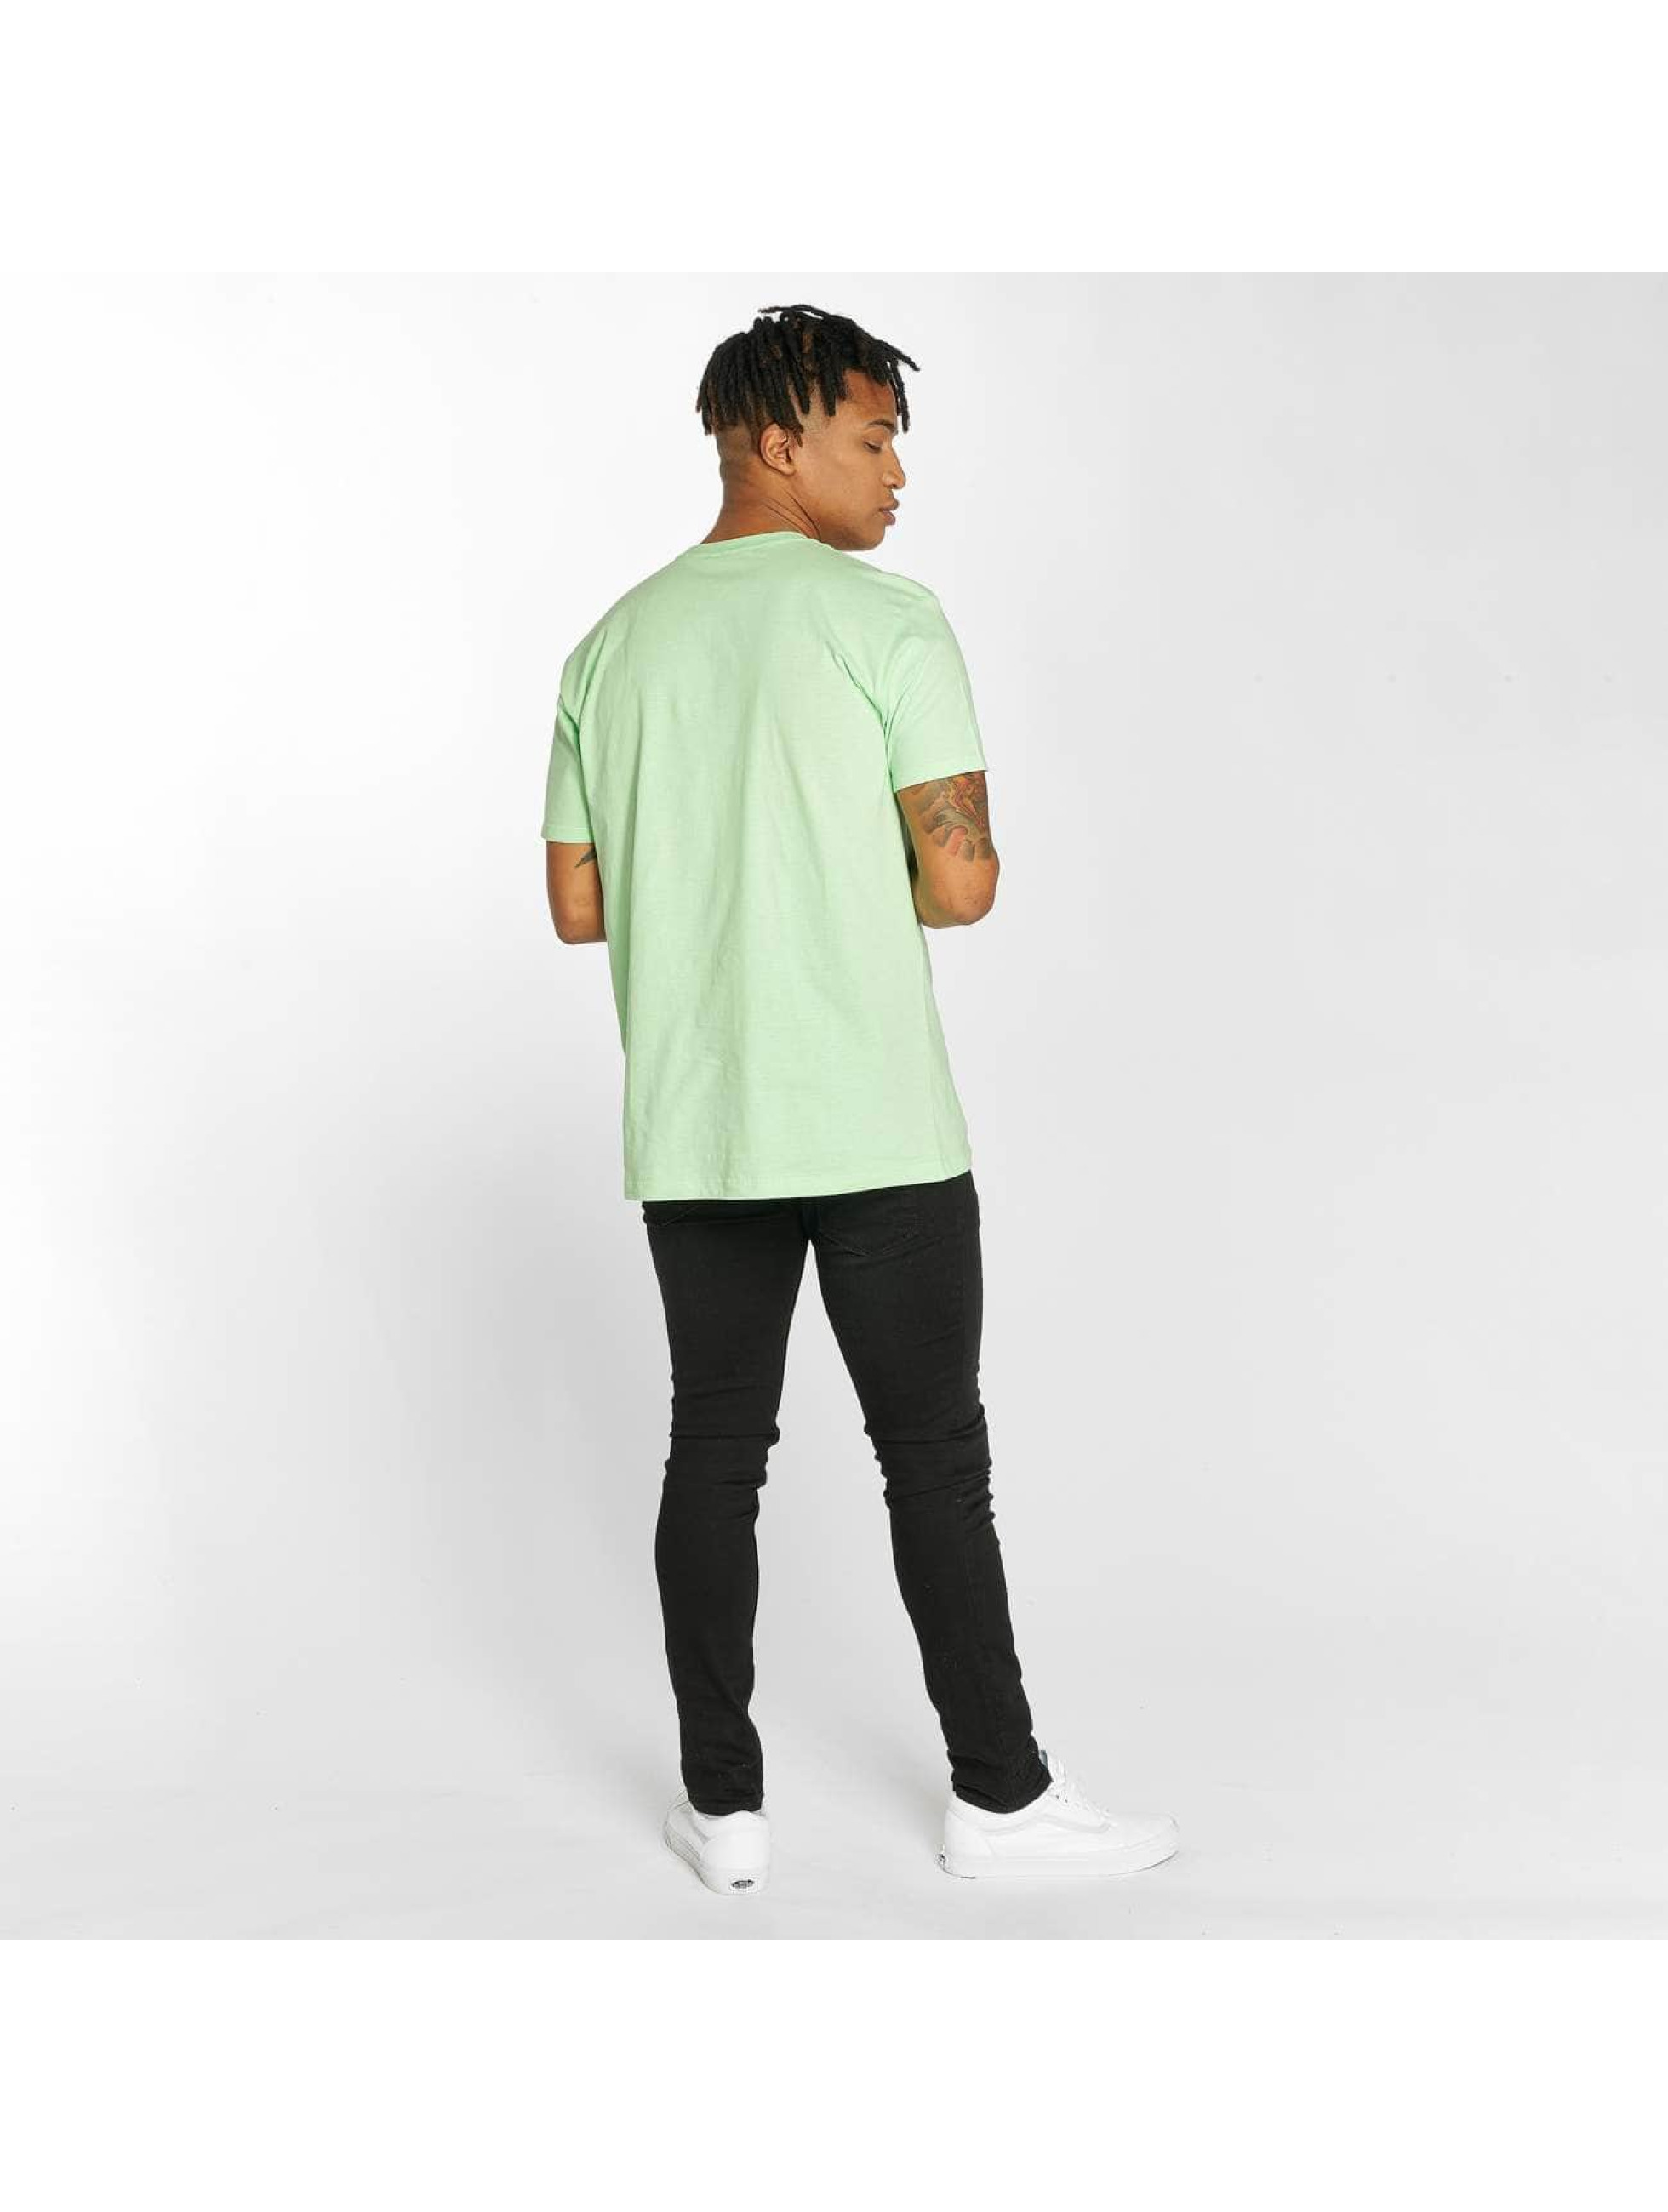 Etnies T-Shirty New Box zielony